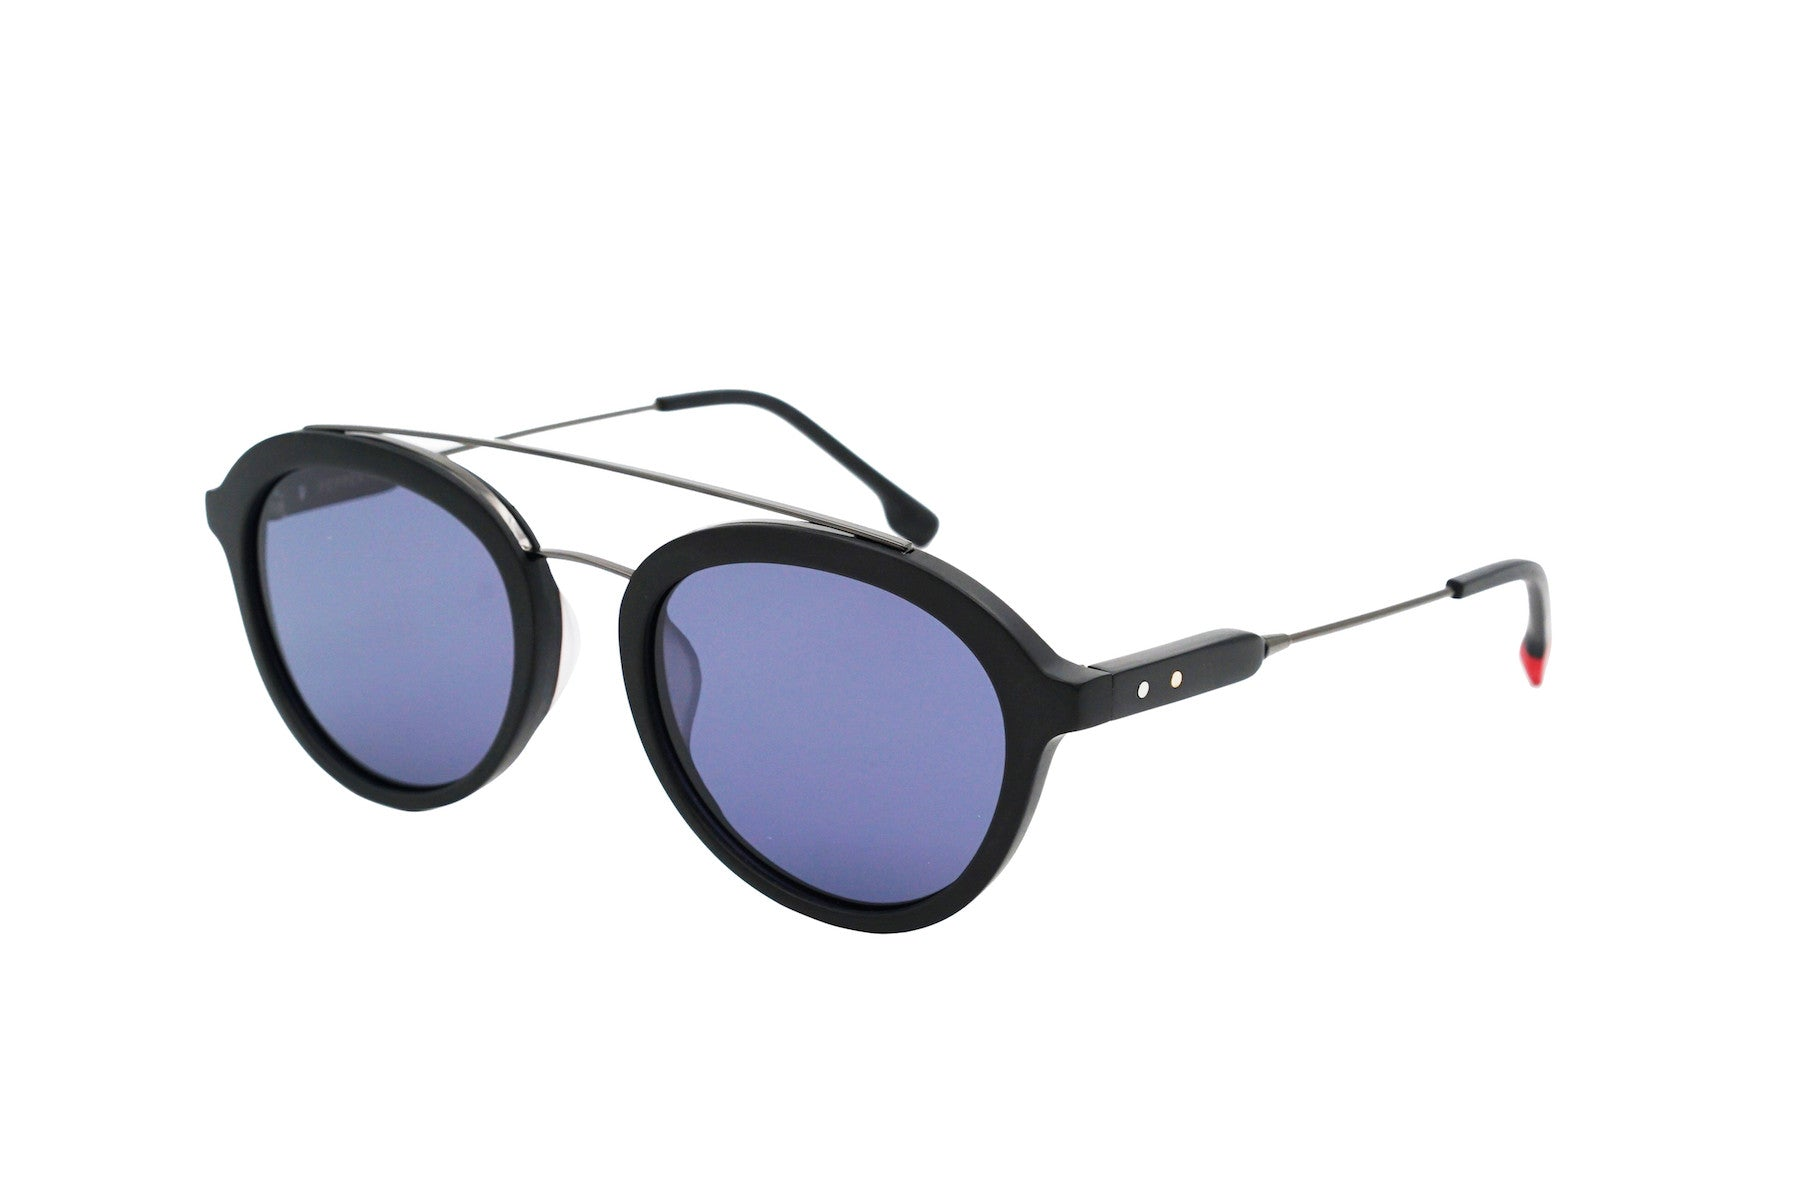 Normandie in Black - Peppertint - Designer sunglasses